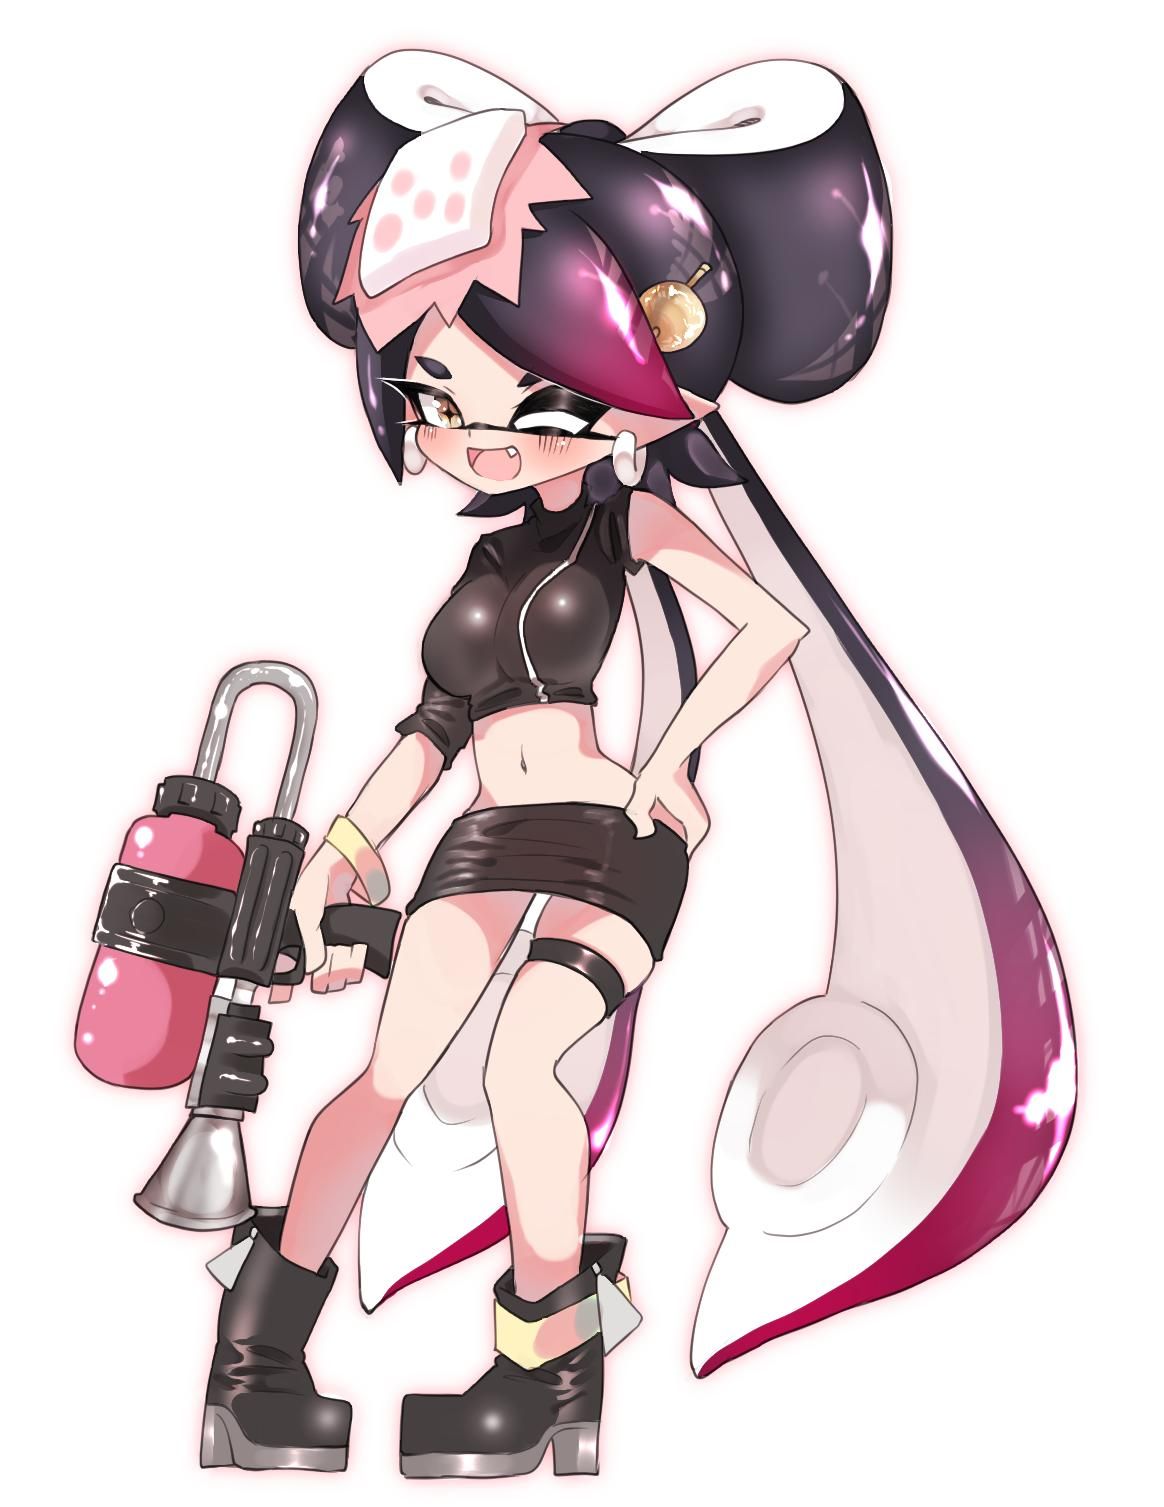 +_+ 1girl ;d ankle_boots anklet aori_(splatoon) asymmetrical_sleeves black_footwear black_hair black_jacket boots bracelet brown_eyes commentary cosplay crop_top domino_mask earrings fang food food_on_head full_body gradient_hair hair_ornament hand_on_hip highres holding holding_weapon jacket jewelry long_hair looking_at_viewer mask microskirt midriff multicolored_hair navel object_on_head octoshot_(splatoon) one_eye_closed open_mouth purple_hair simple_background skindentation skirt smile solo splatoon_(series) splatoon_2 splatoon_2:_octo_expansion standing sukeo_(nunswa08) sushi tentacle_hair thigh_strap very_long_hair weapon white_background zipper zipper_pull_tab